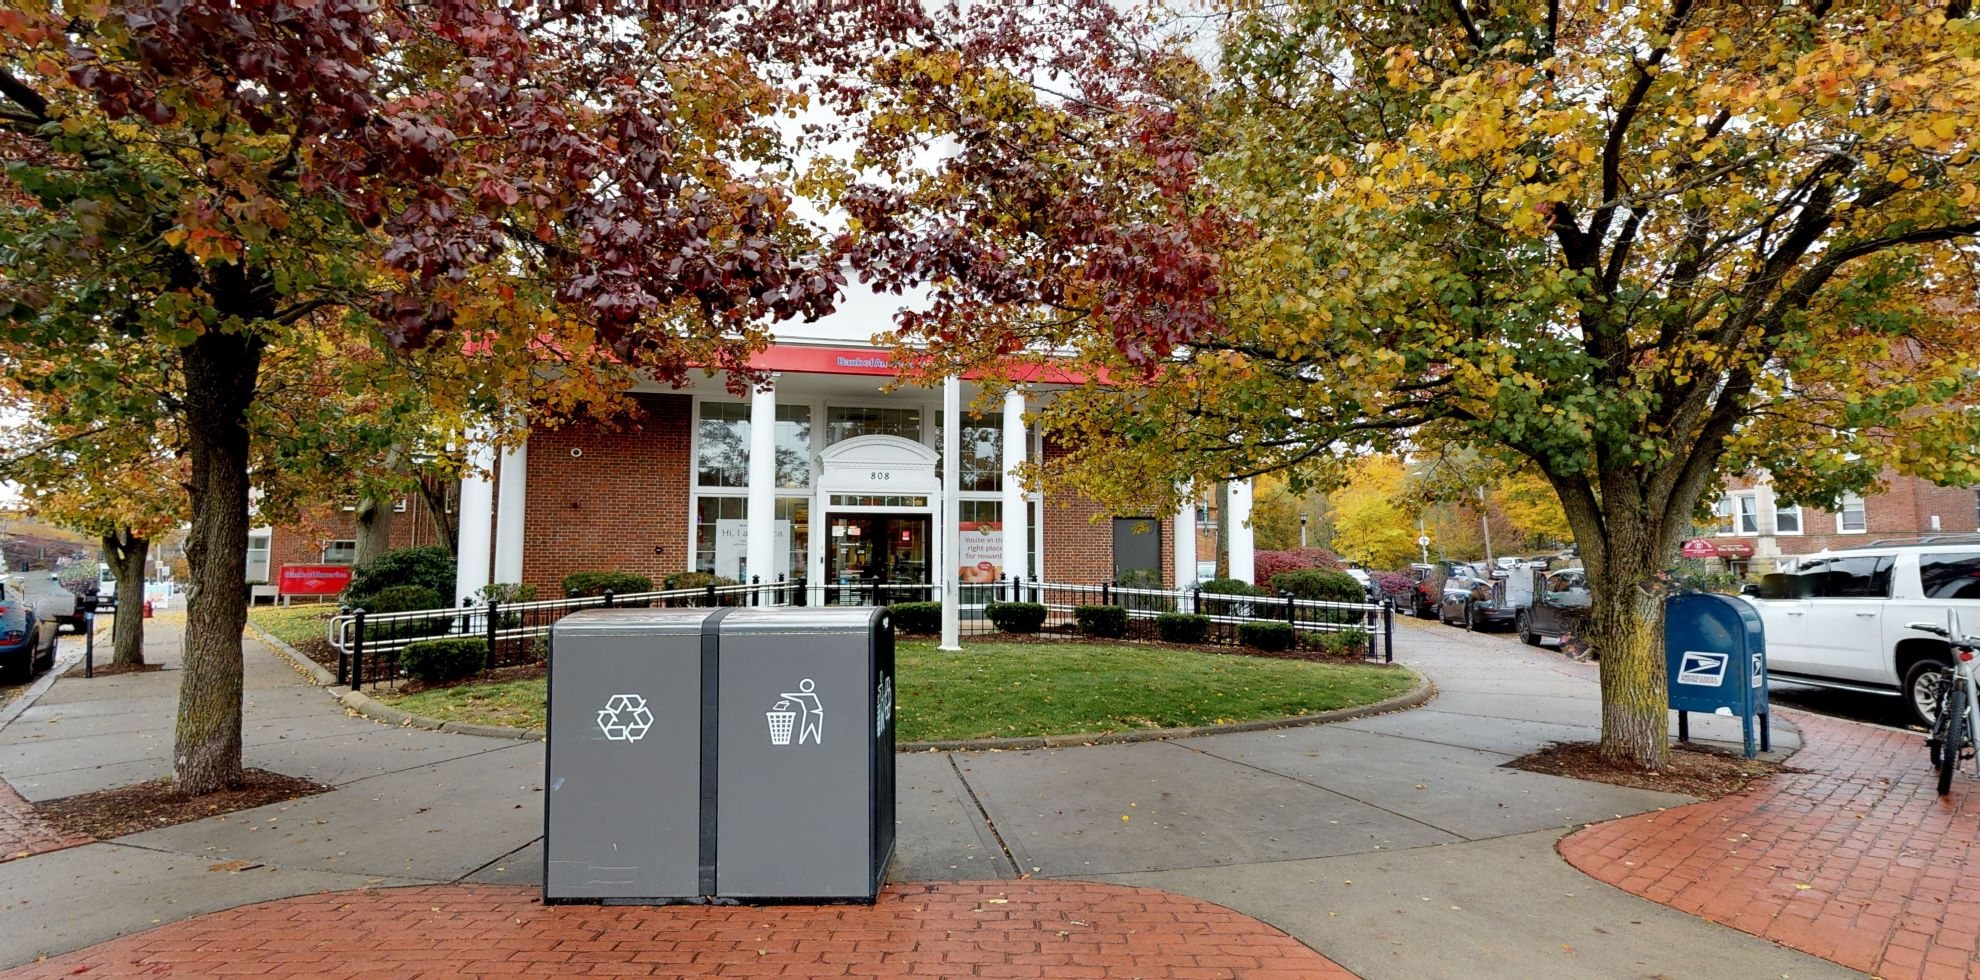 Bank of America financial center with drive-thru ATM   808 Beacon St, Newton, MA 02459